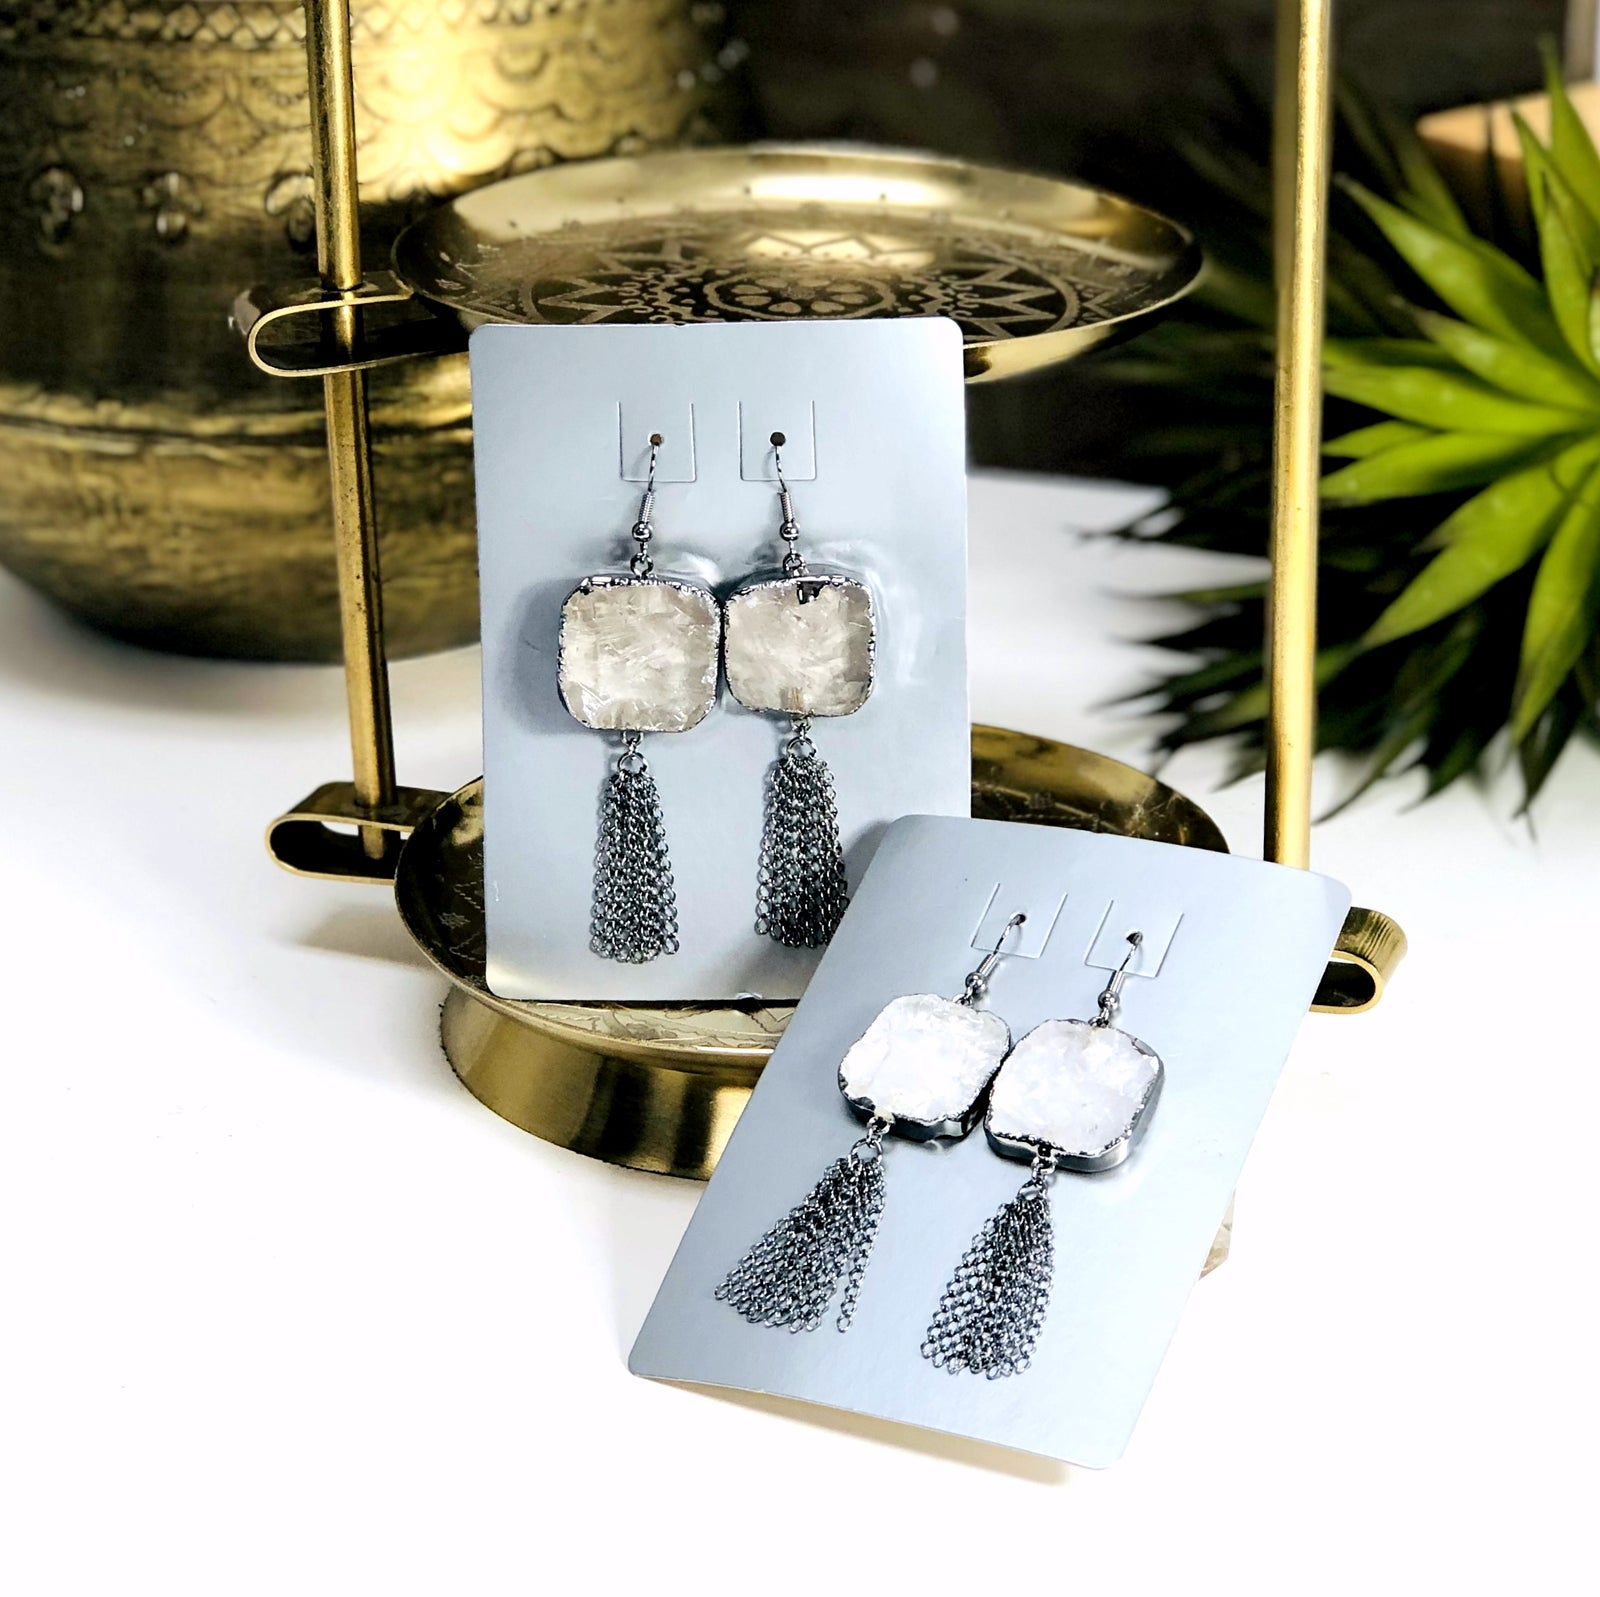 Crystal Quartz Drop Earrings with Tassel Chain in Electroplated Gun Metal (EBOX24-25)